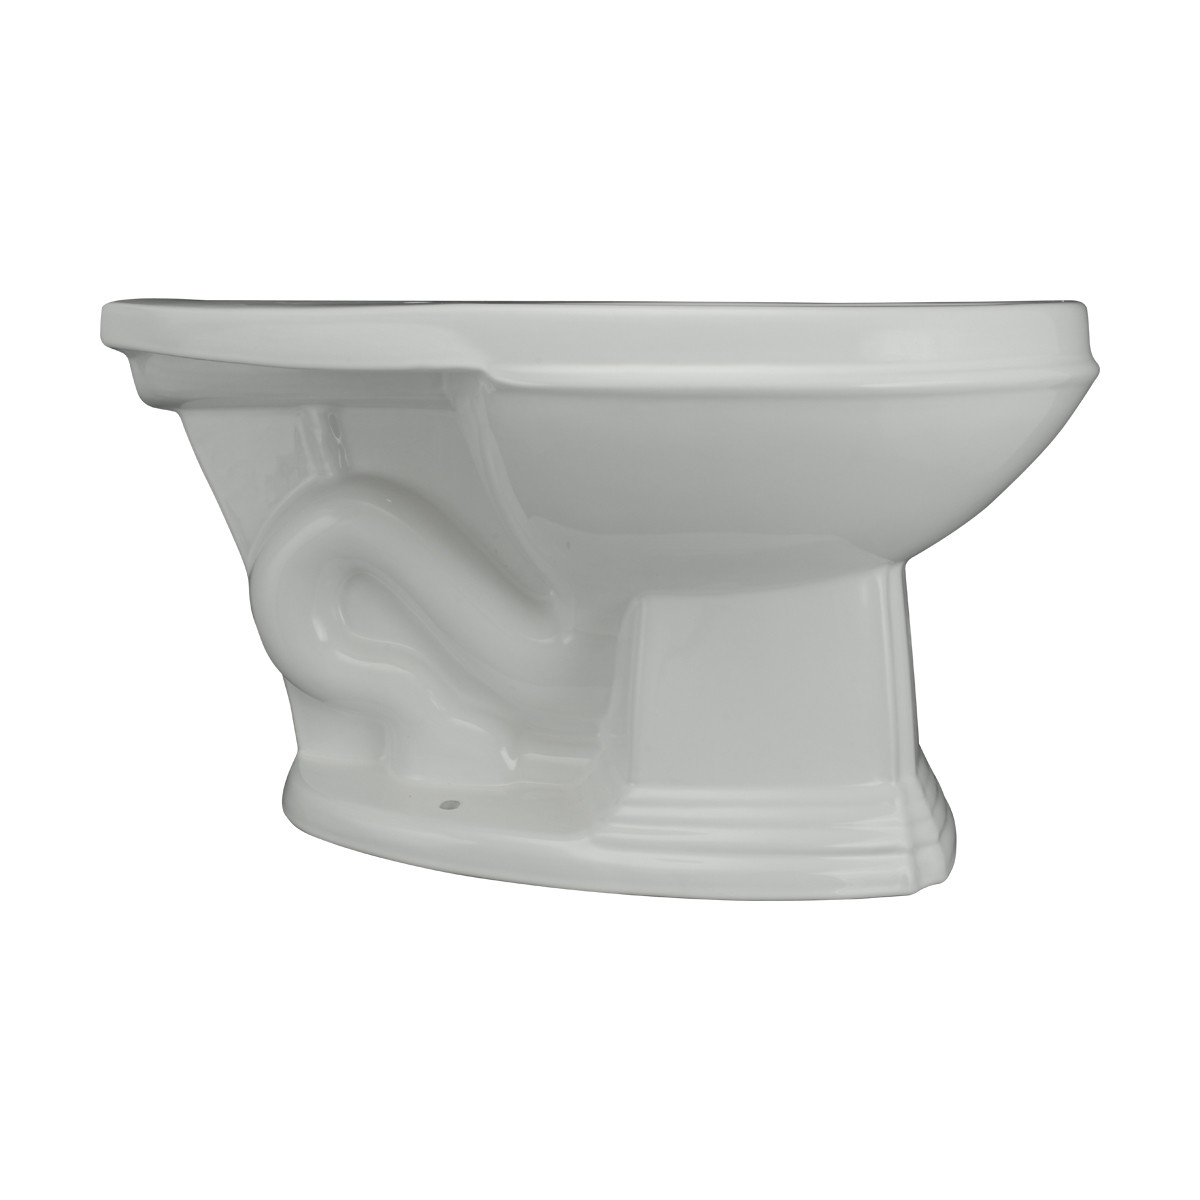 Cherry High Tank Pull Chain Toilet with White Elongated Bowl and Satin Rear Entry High Tank Pull Chain Toilets Elongated Bowl High Tank Toilet Old Fashioned Toilet